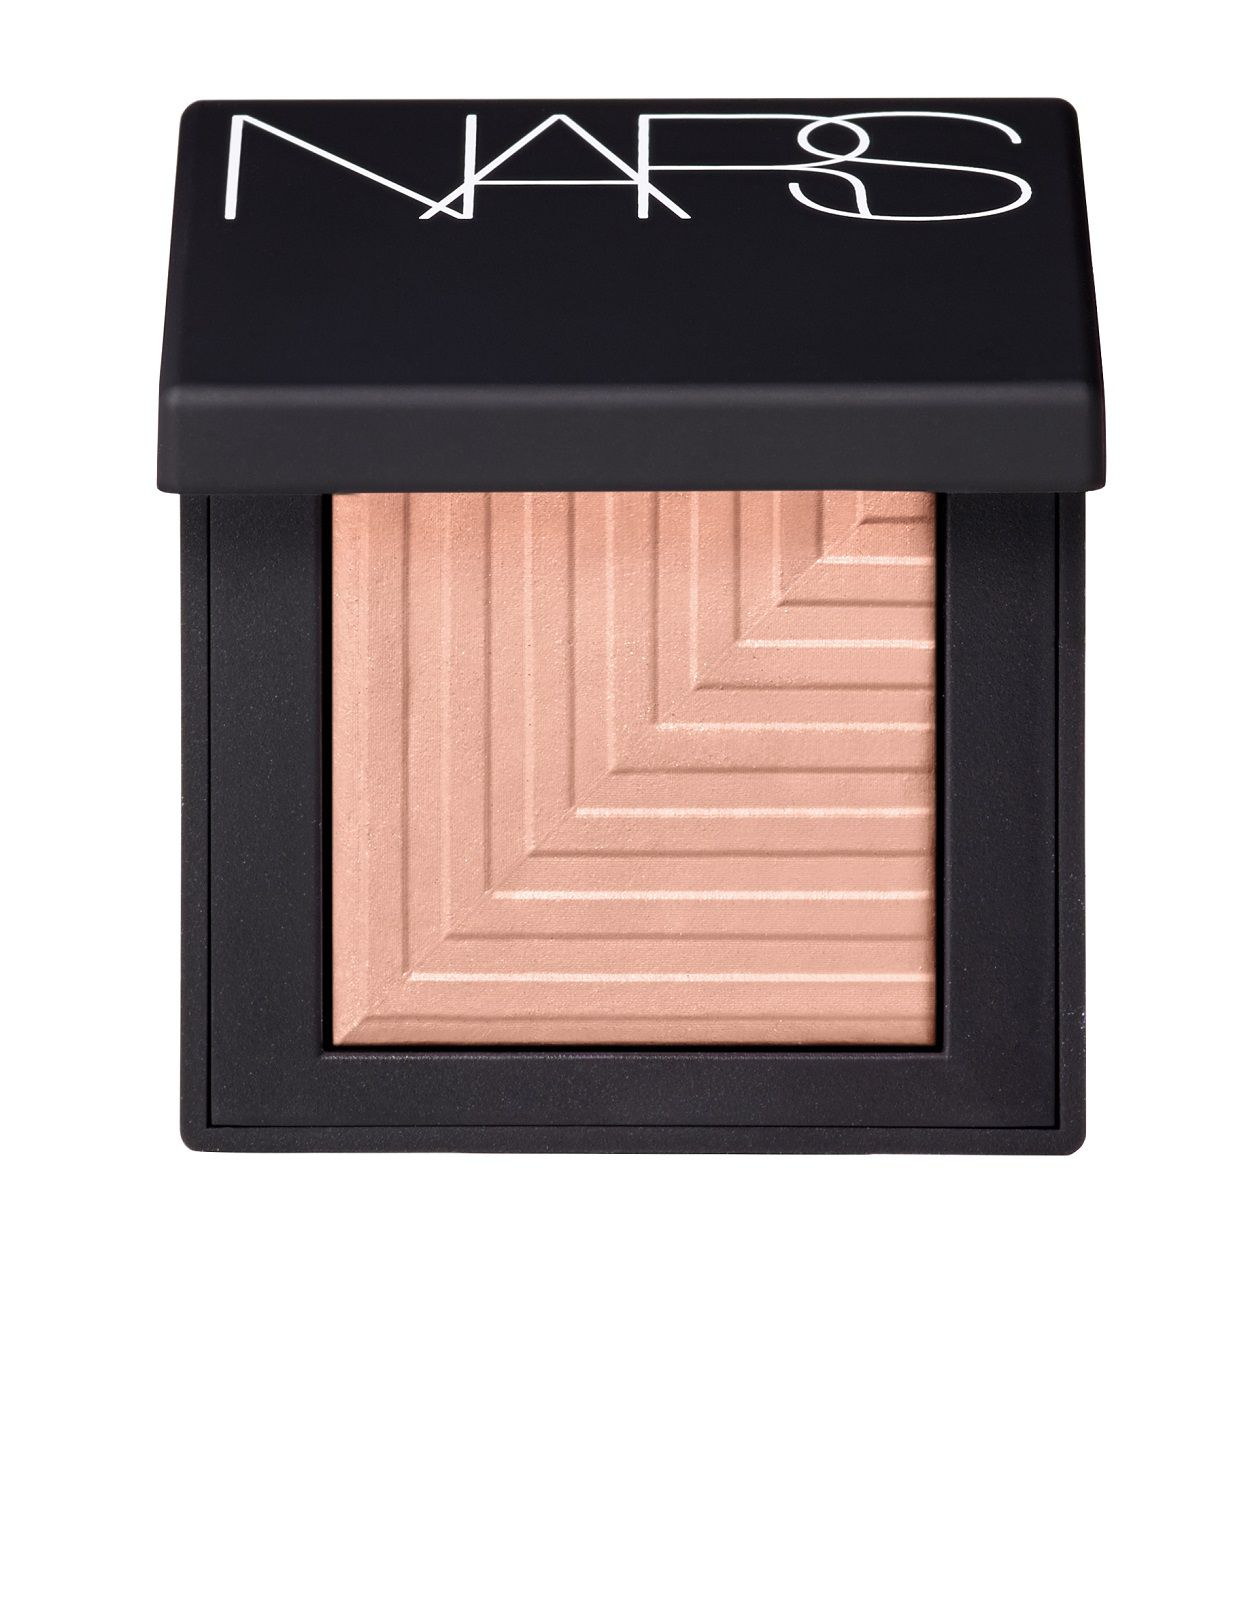 Nars Cosmetics DualIntensity Eyeshadow Europa